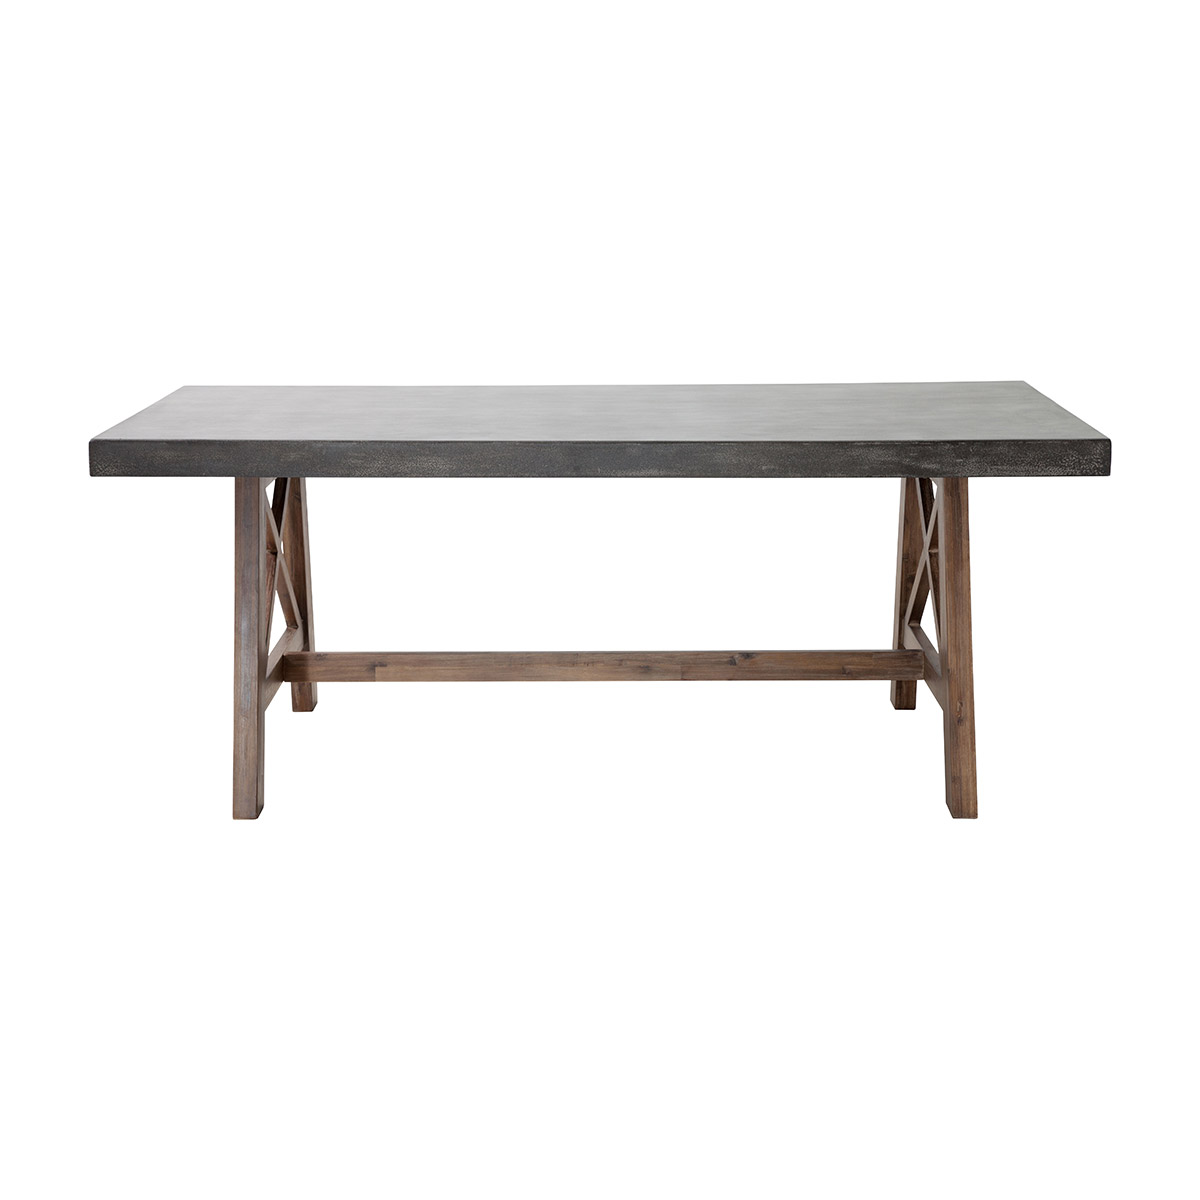 Zuo Ford Patio Dining Table In Cement Natural Boost Home